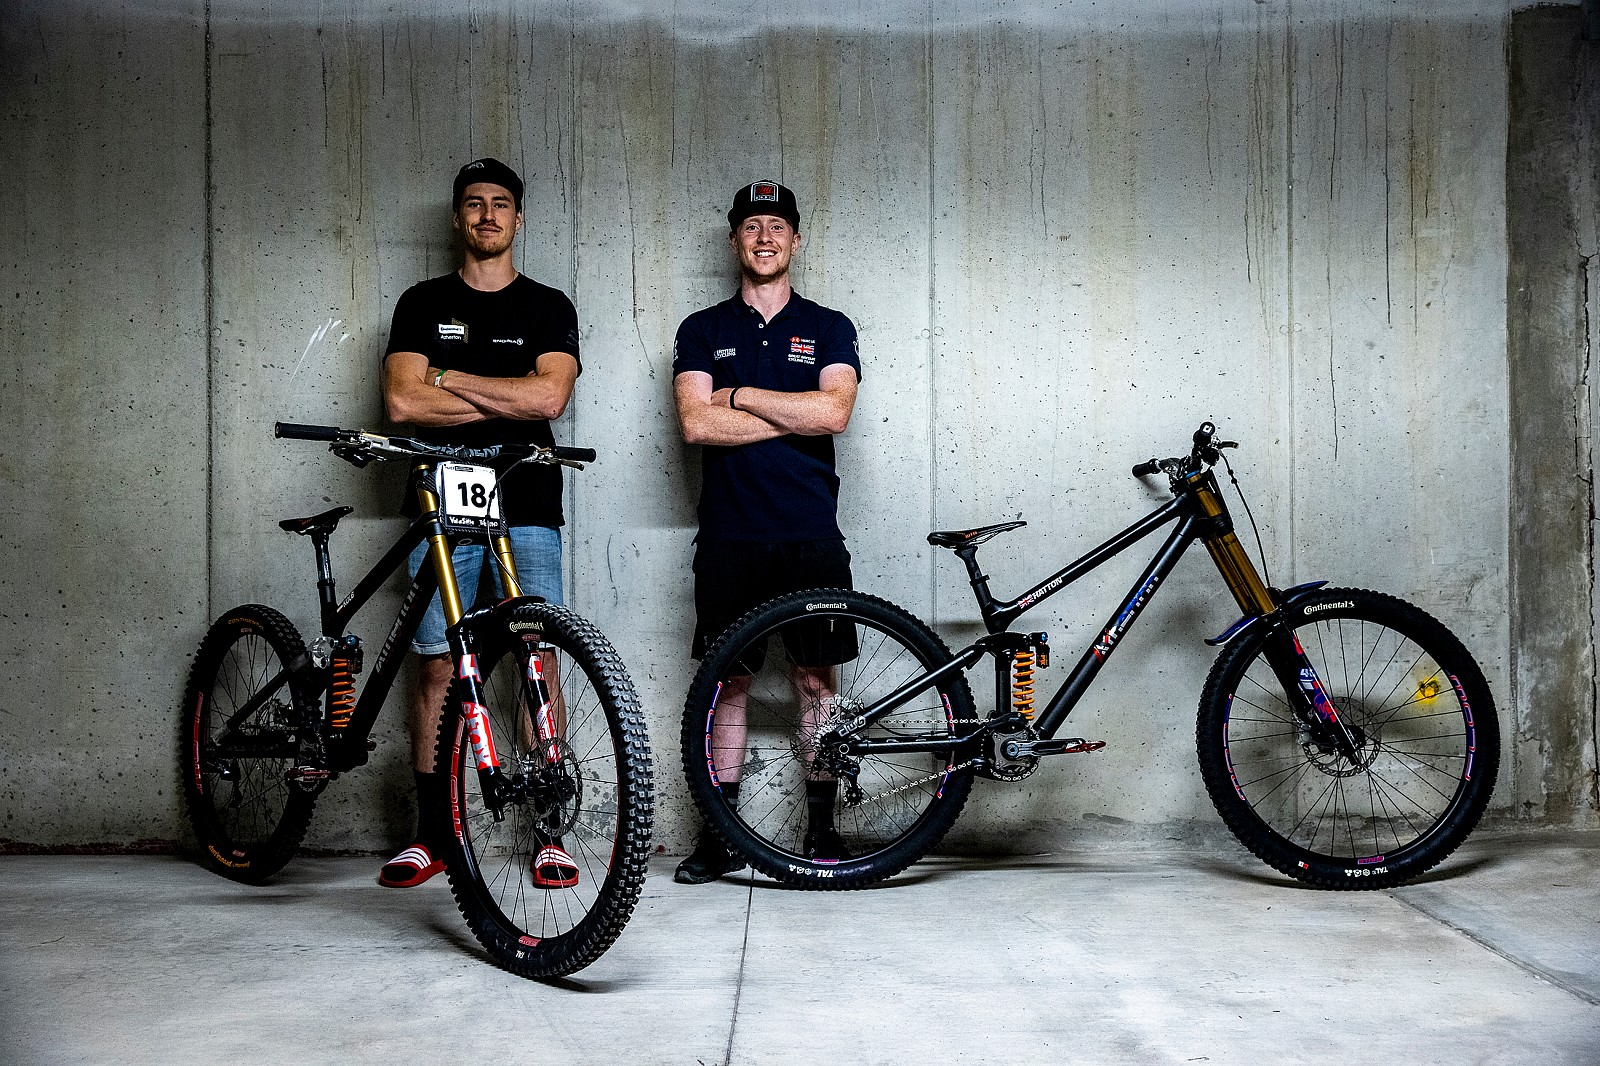 Andreas Kolb and Charlie Hatton with Their Atherton Bikes at the Val di Sole World Champs - WORLD CHAMPS BIKES - Atherton Racing - Mountain Biking Pictures - Vital MTB